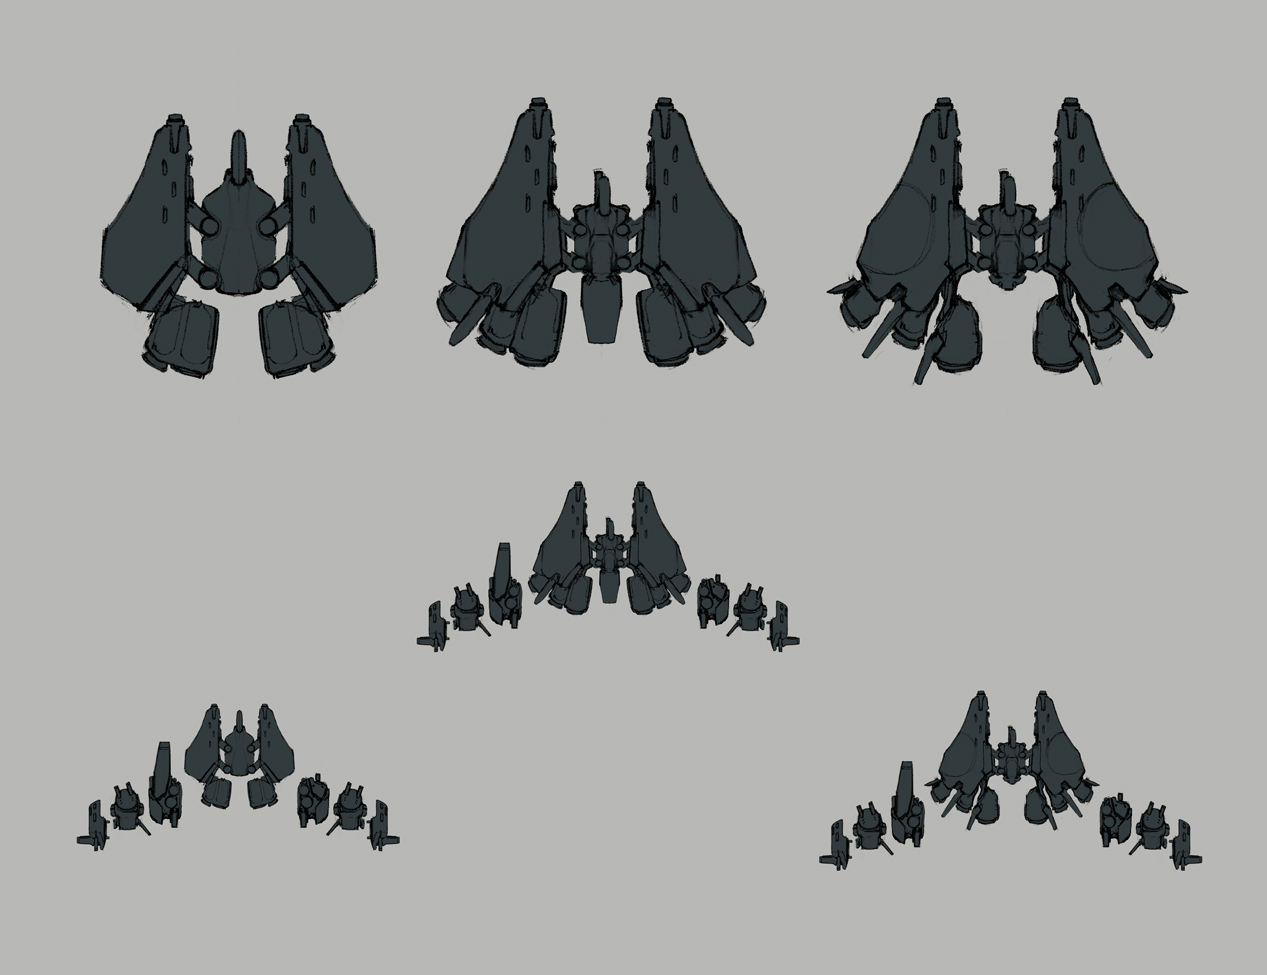 prototype_ship_sketch01